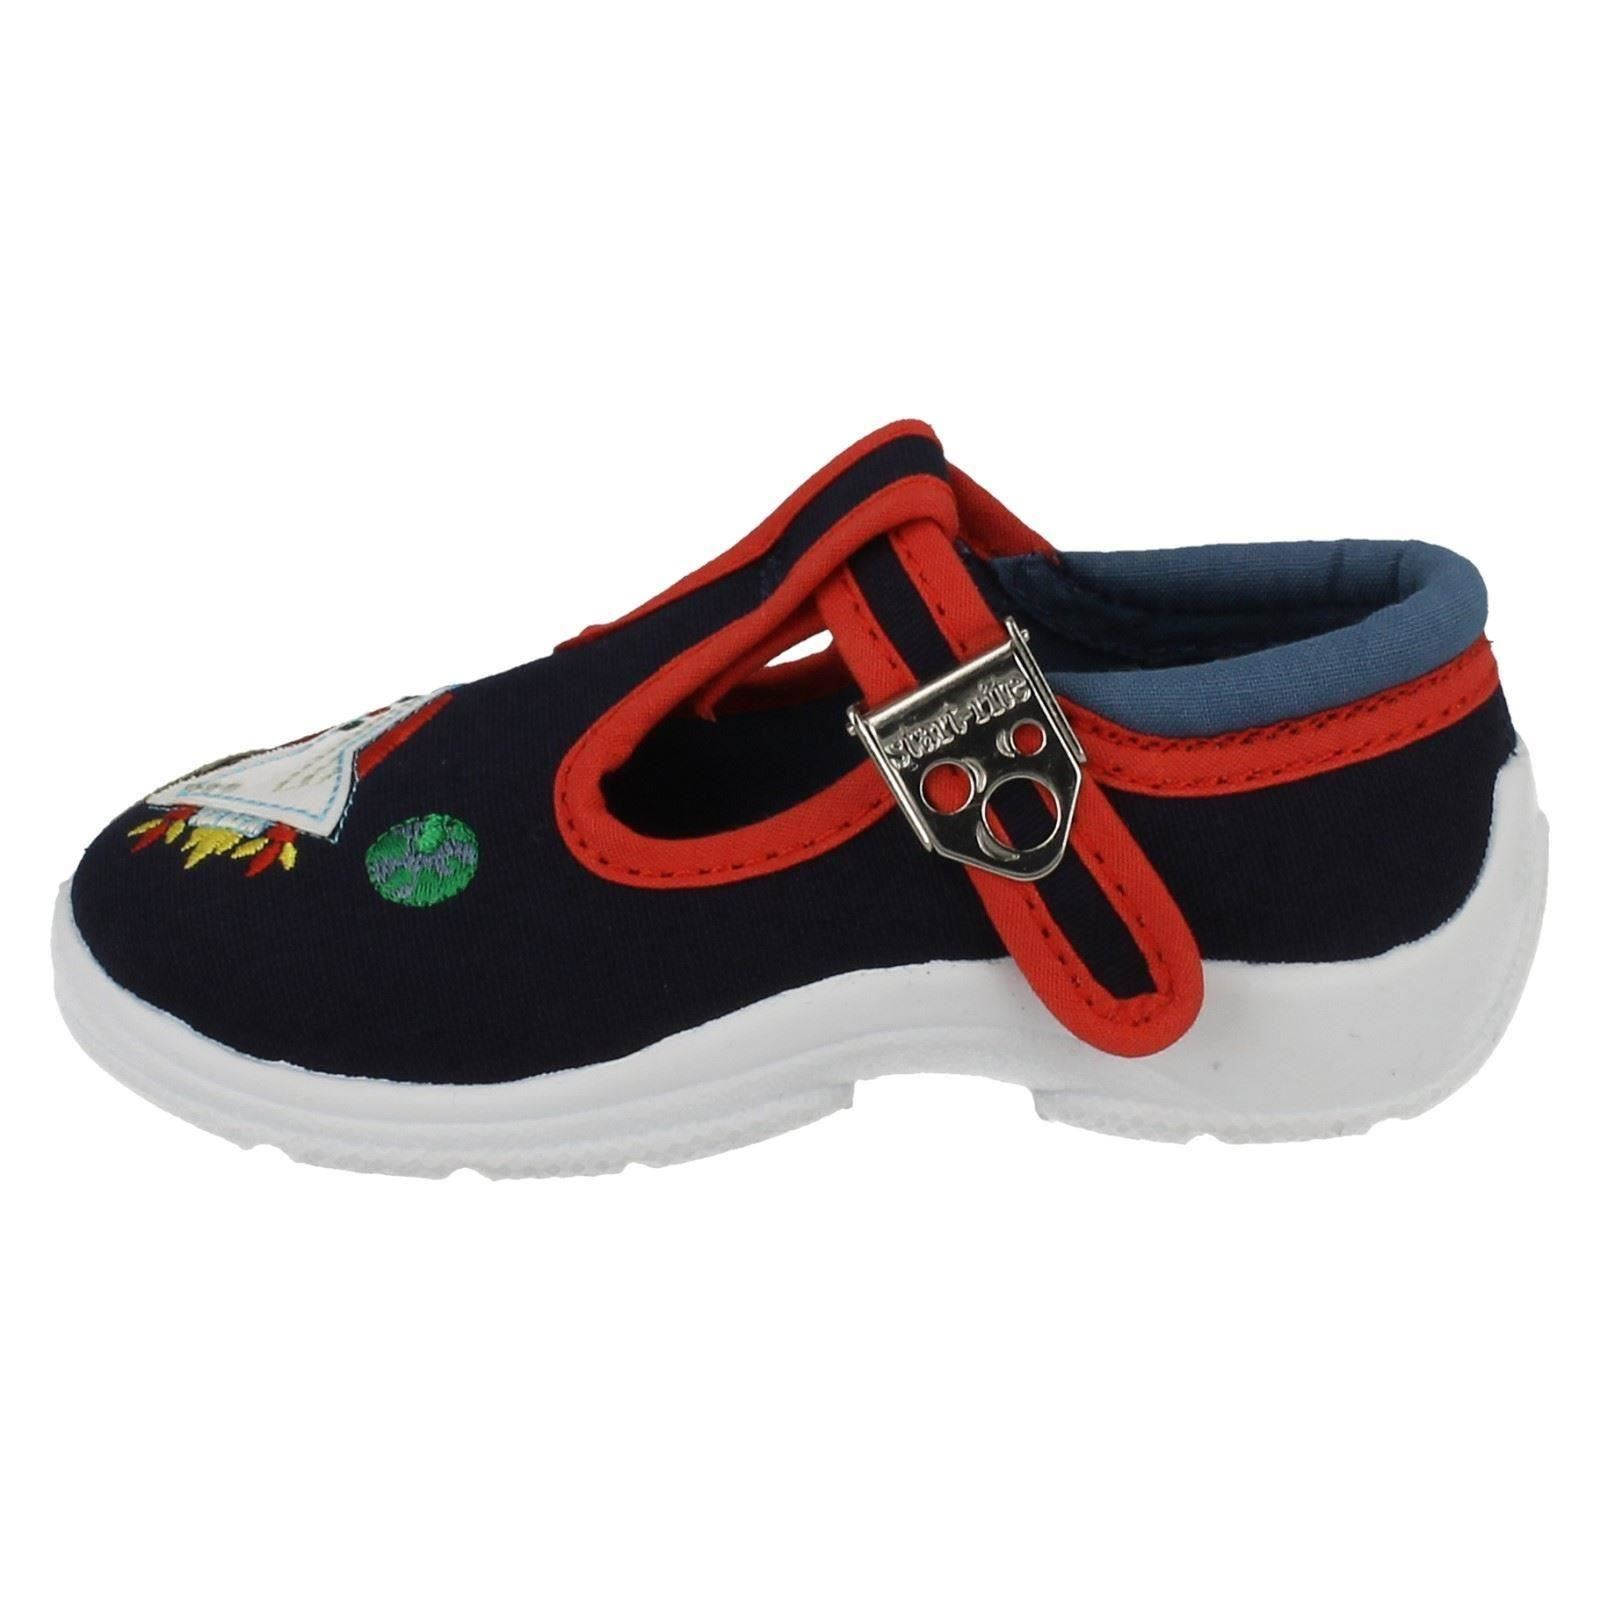 Startrite Boys Canvas Shoes - Space Cadet